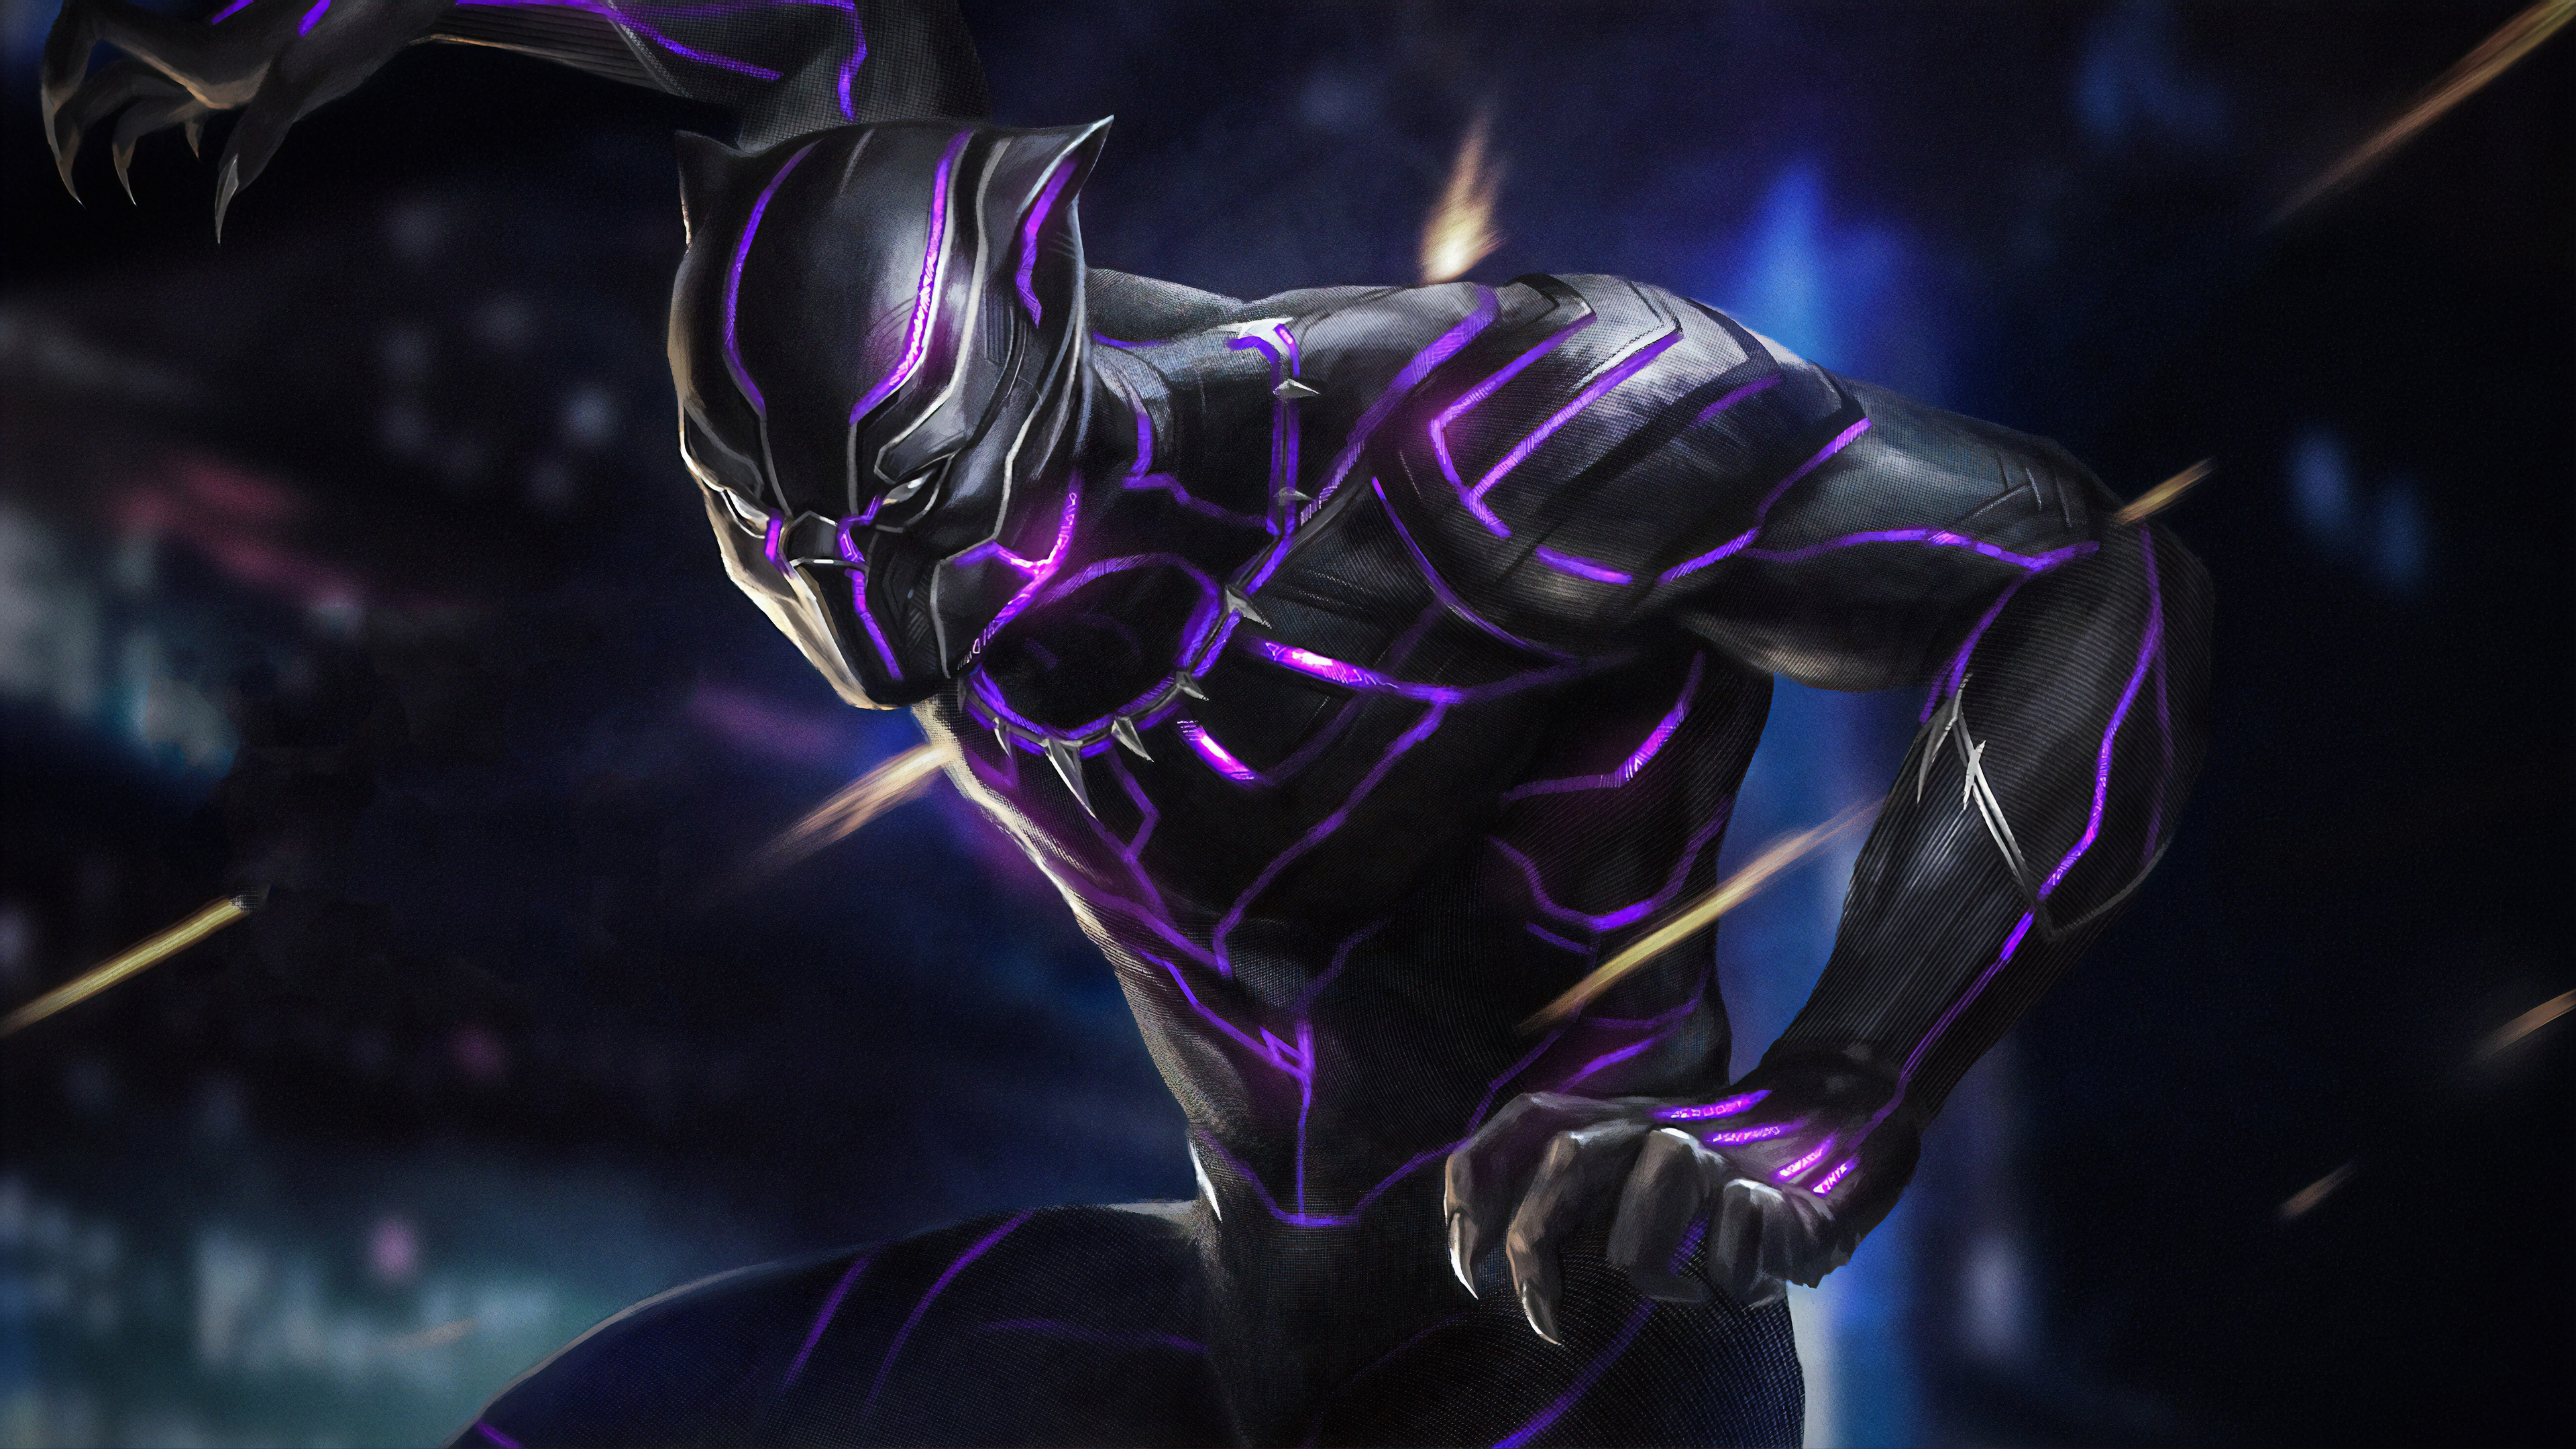 3840x2160 Black Panther 4k New 4k HD 4k Wallpapers, Images ...